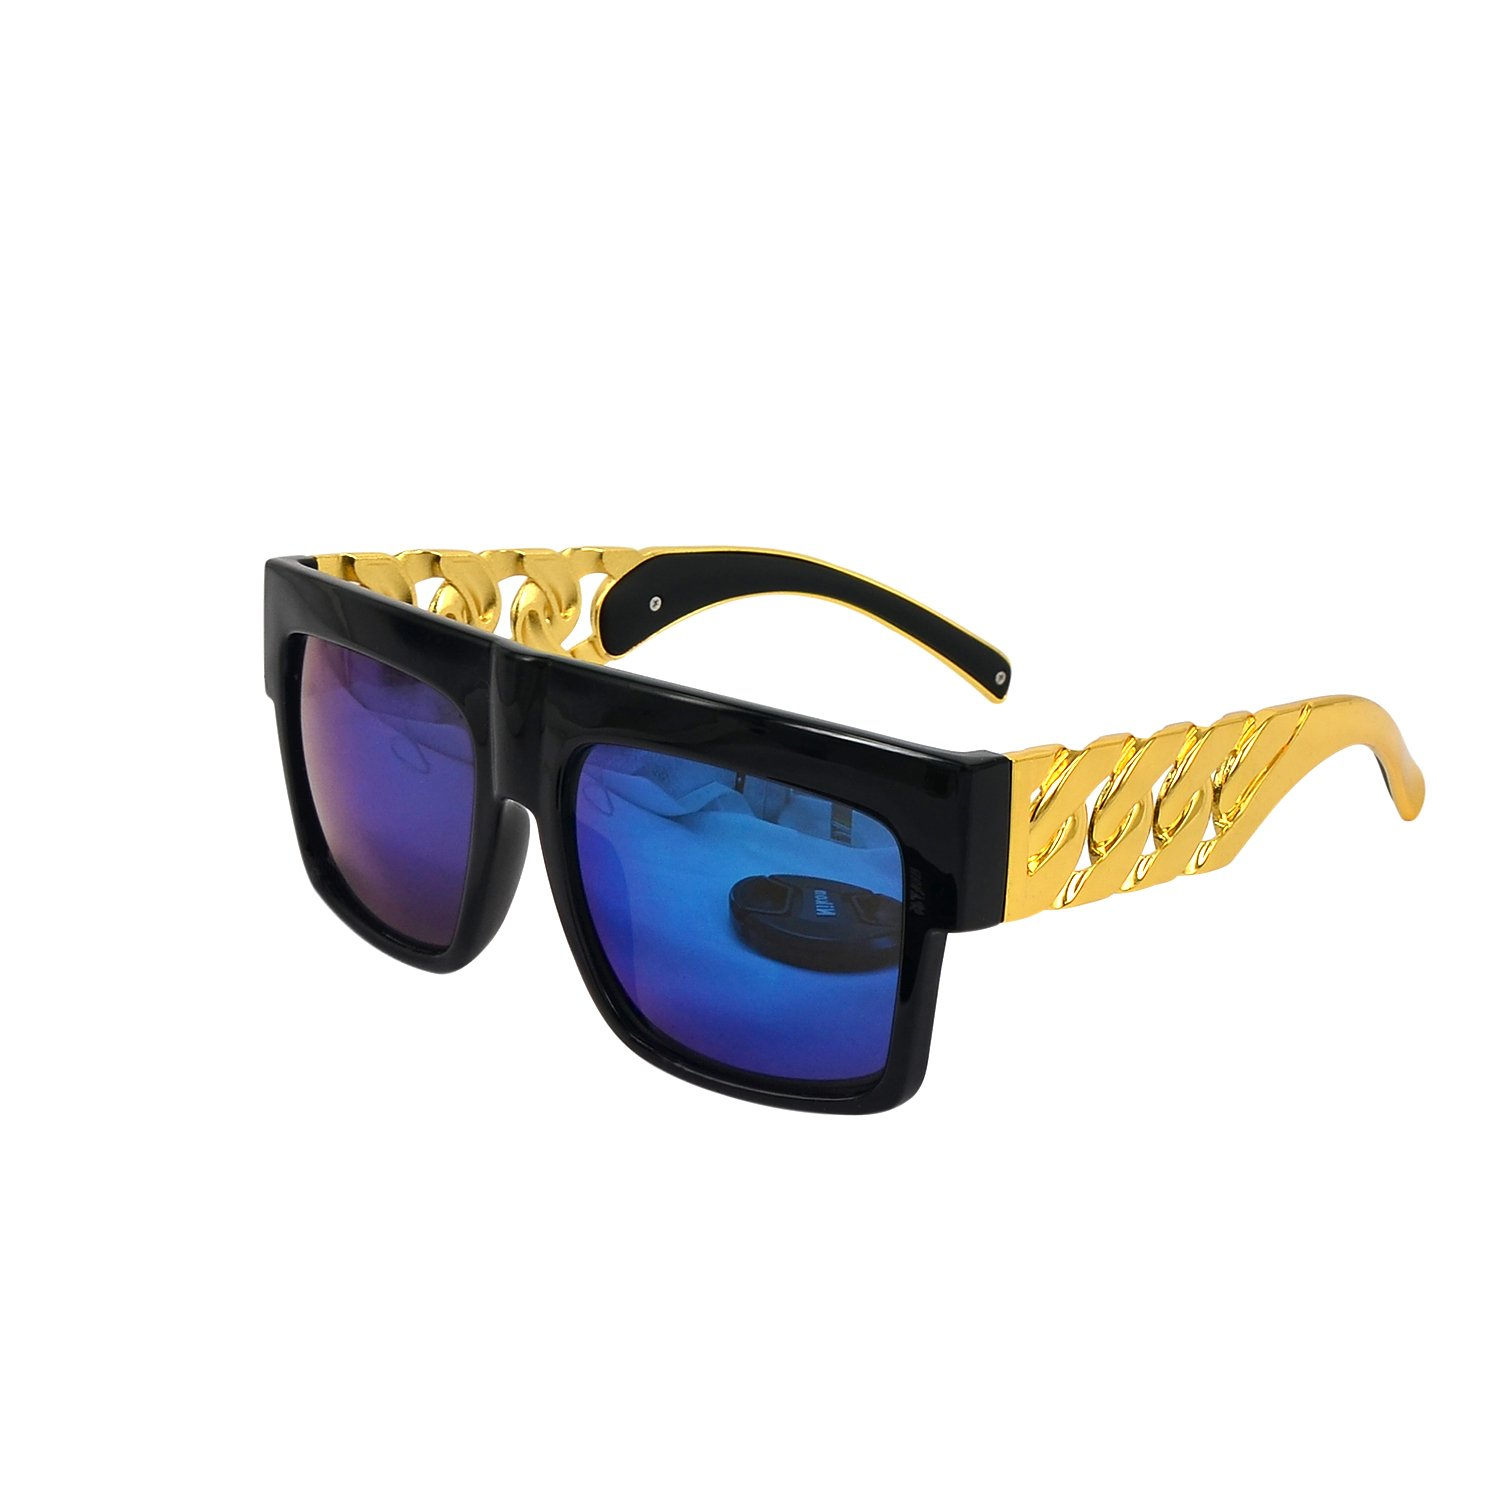 Thick Gold Metal Link Chain Sunglasses Shinny Black with Blue Reflective Lens